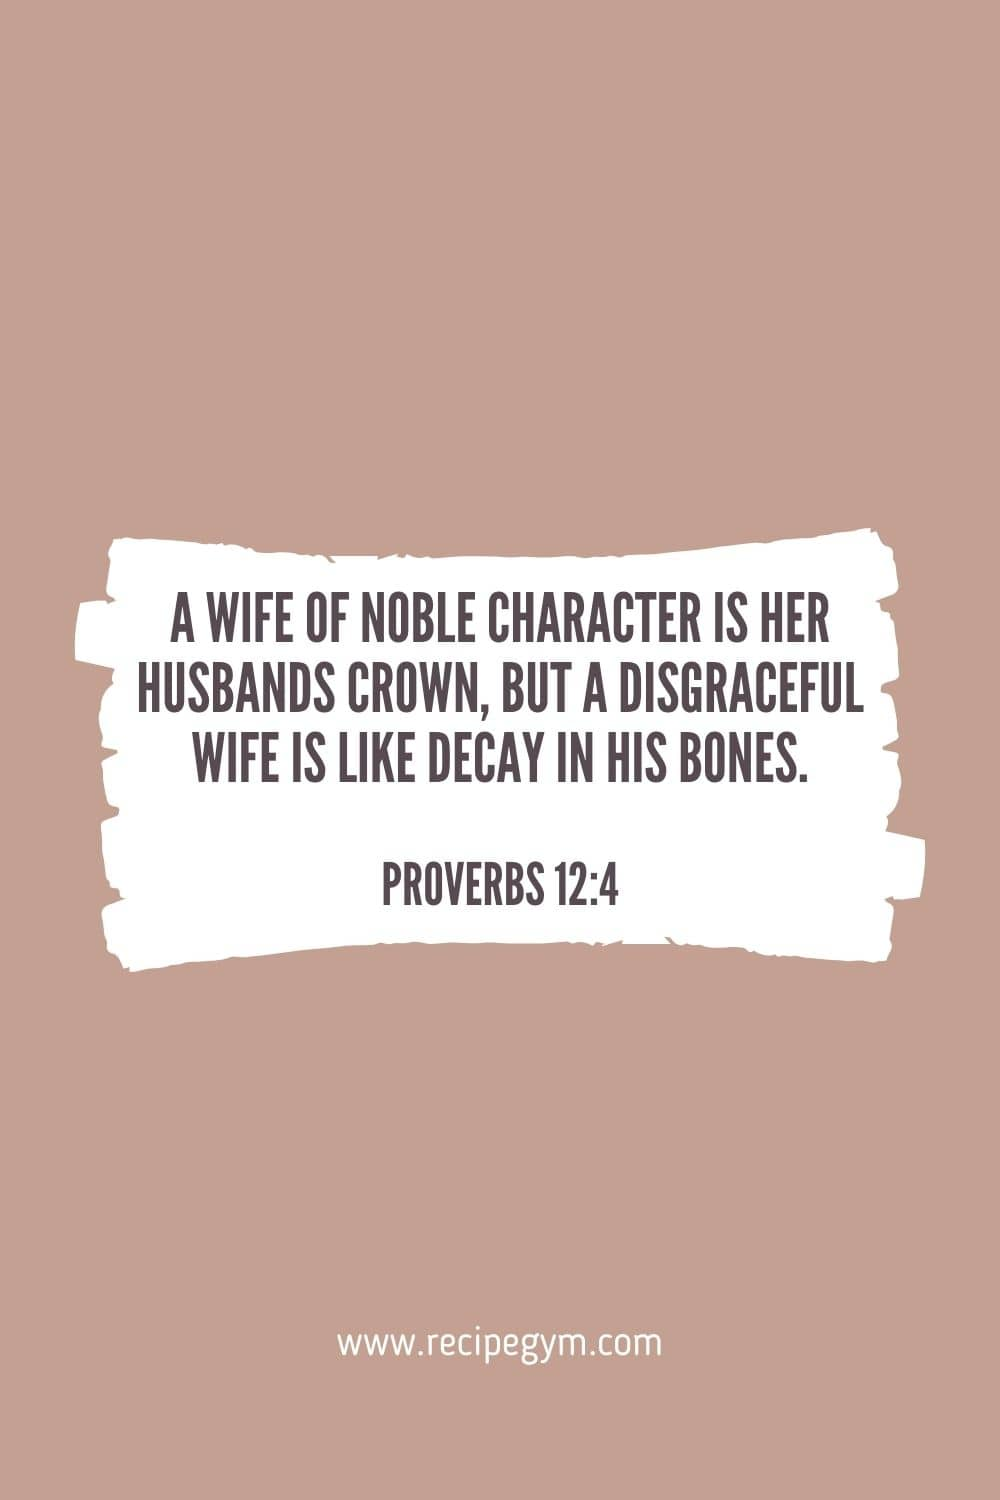 30 powerful bible verses about family | faith fitness food